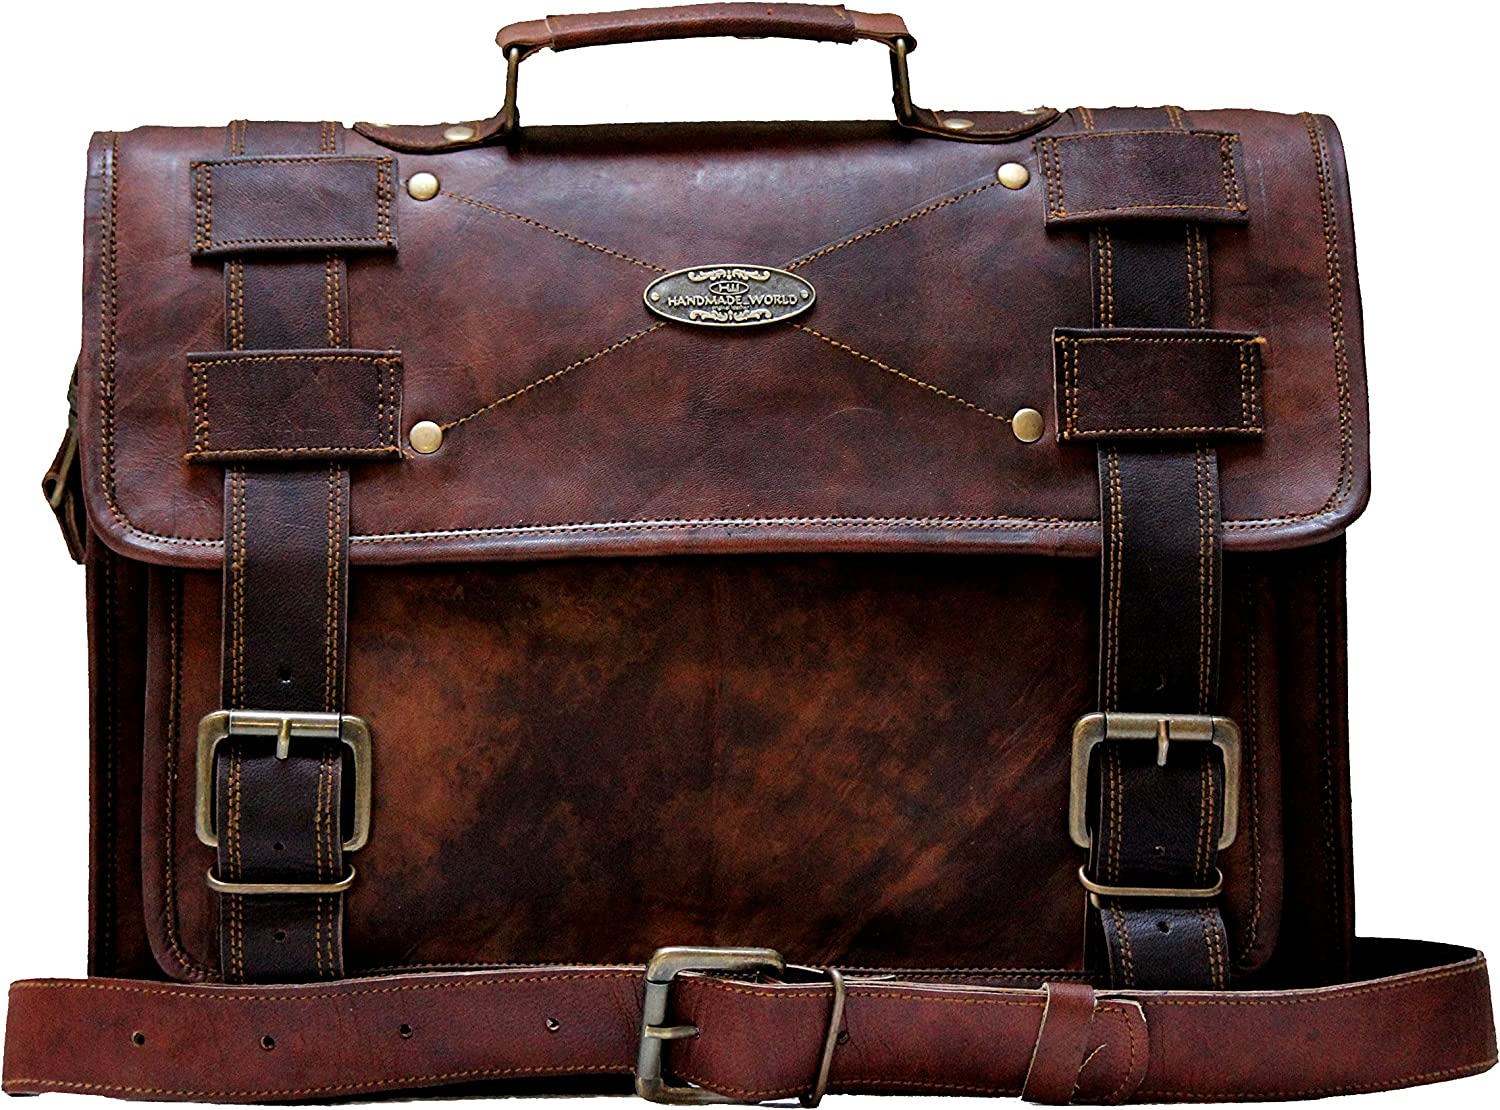 "Handmade World Laptop Bag Vintage Men Brown Leather Briefcase Messenger Bags (13"" X 18"")"